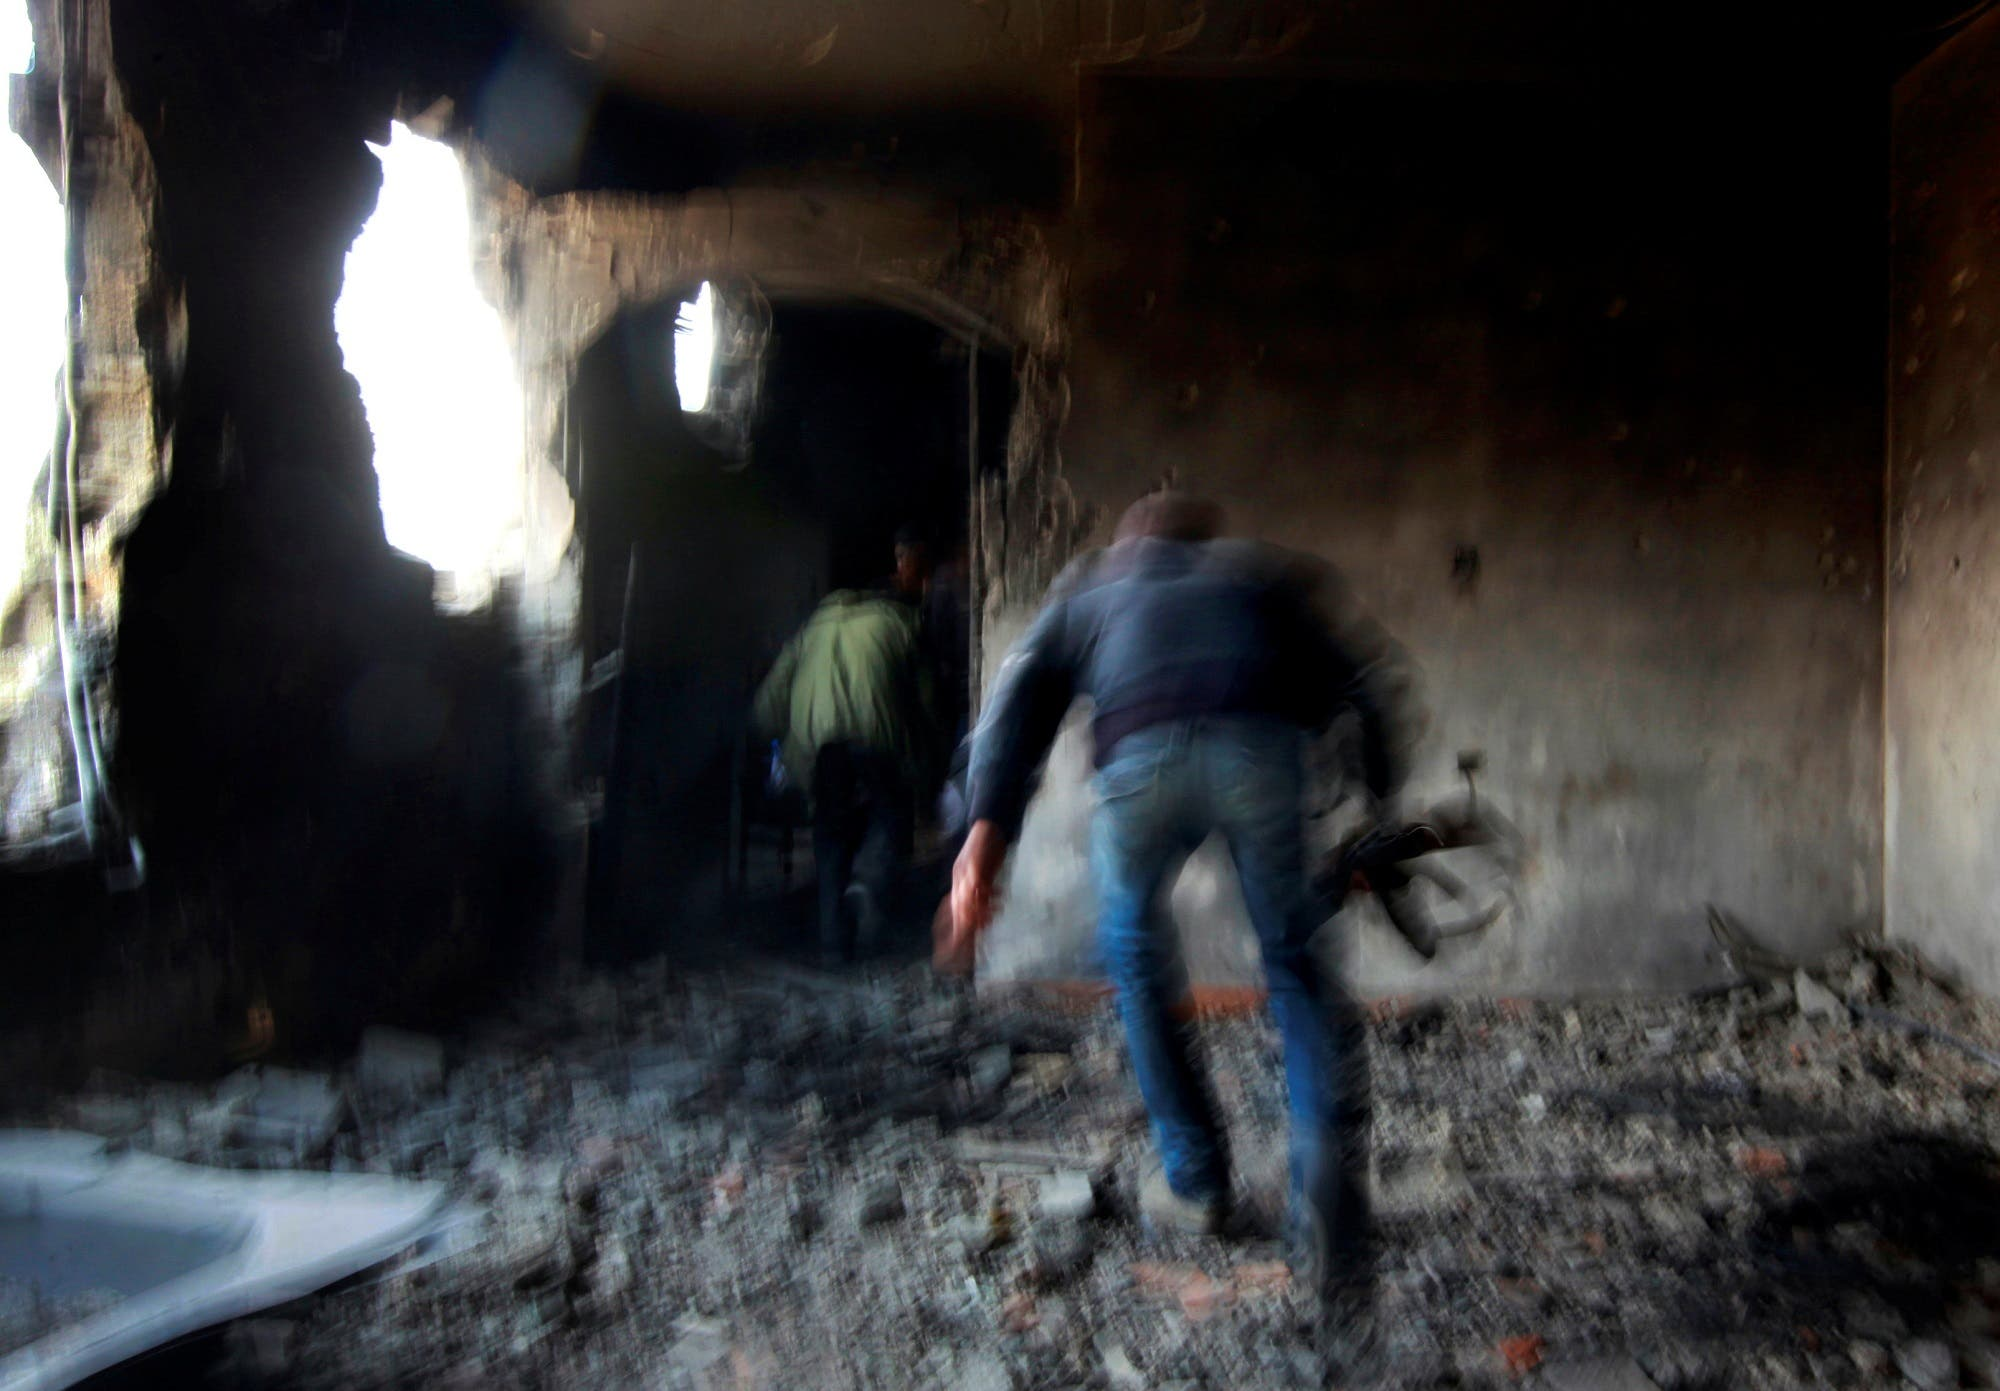 Rebel fighters run for cover inside a building on the frontline in Tripoli street in central Misrata, April 21, 2011. (Reuters/ Yannis Behrakis)